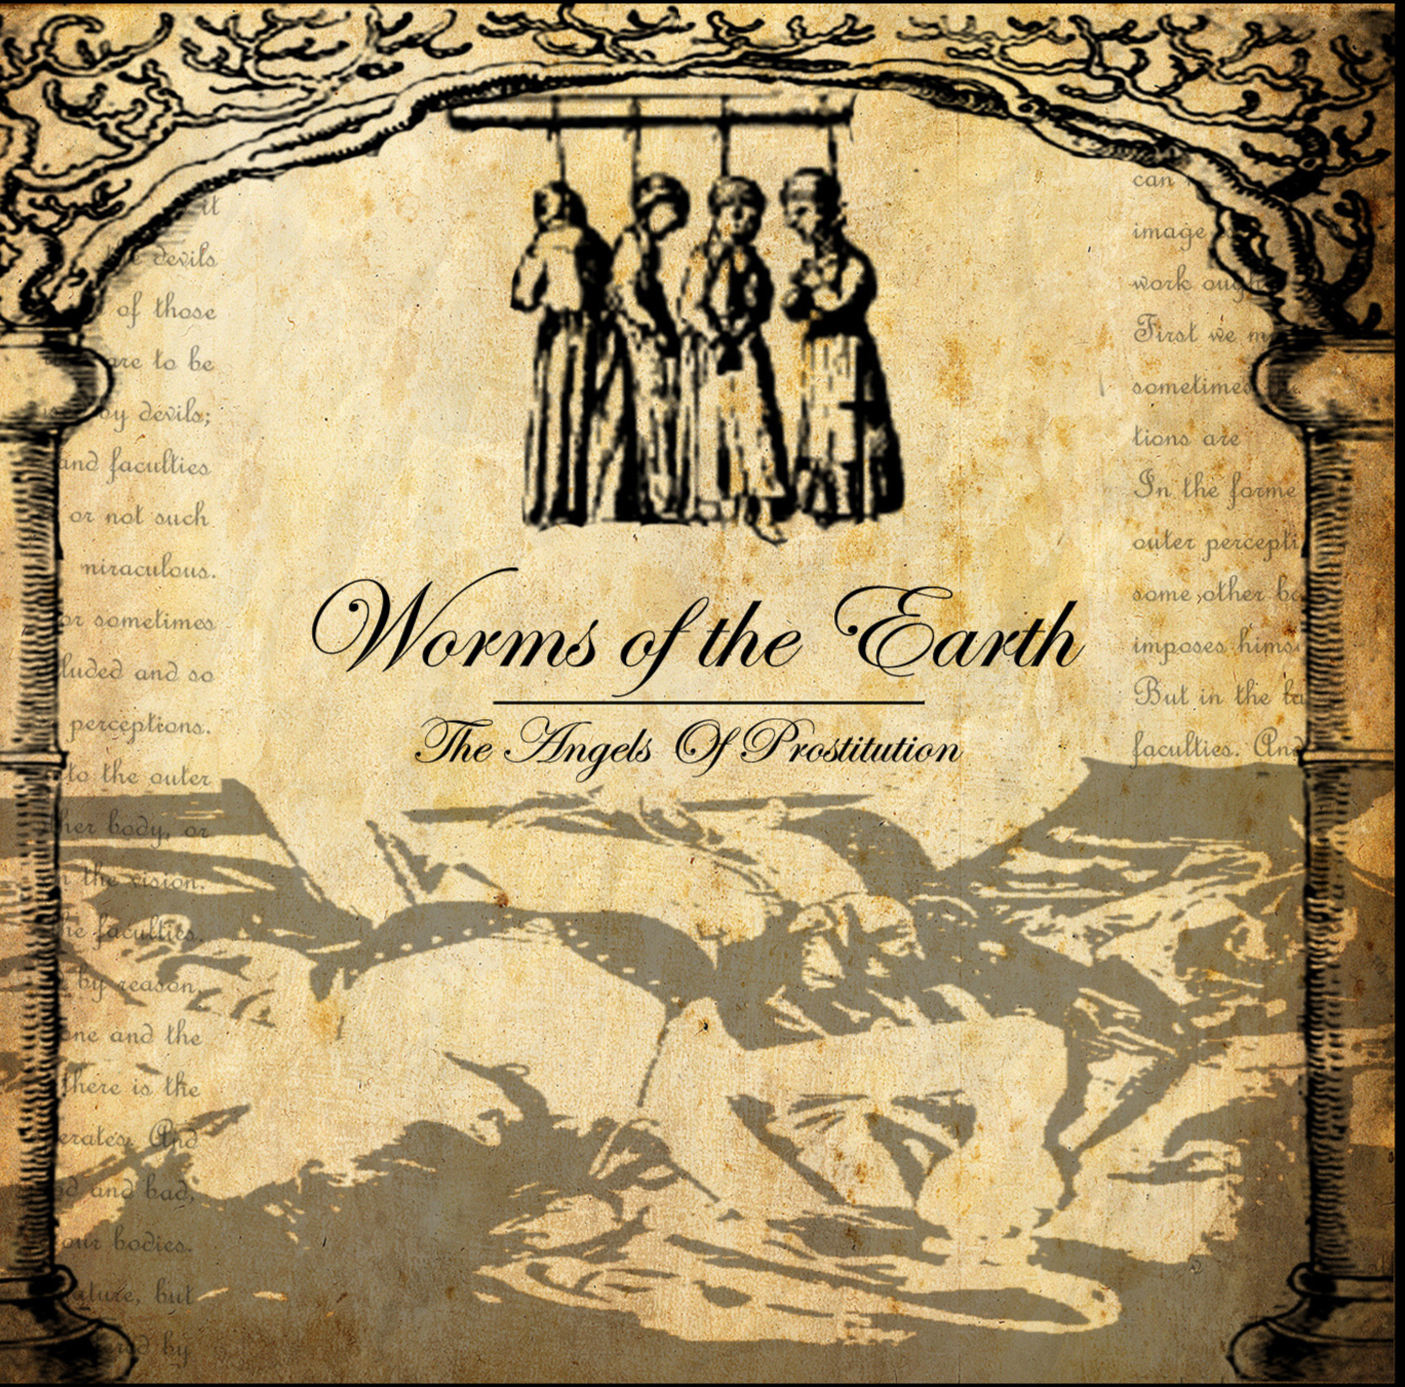 worms of the earth - the angels of prostitution